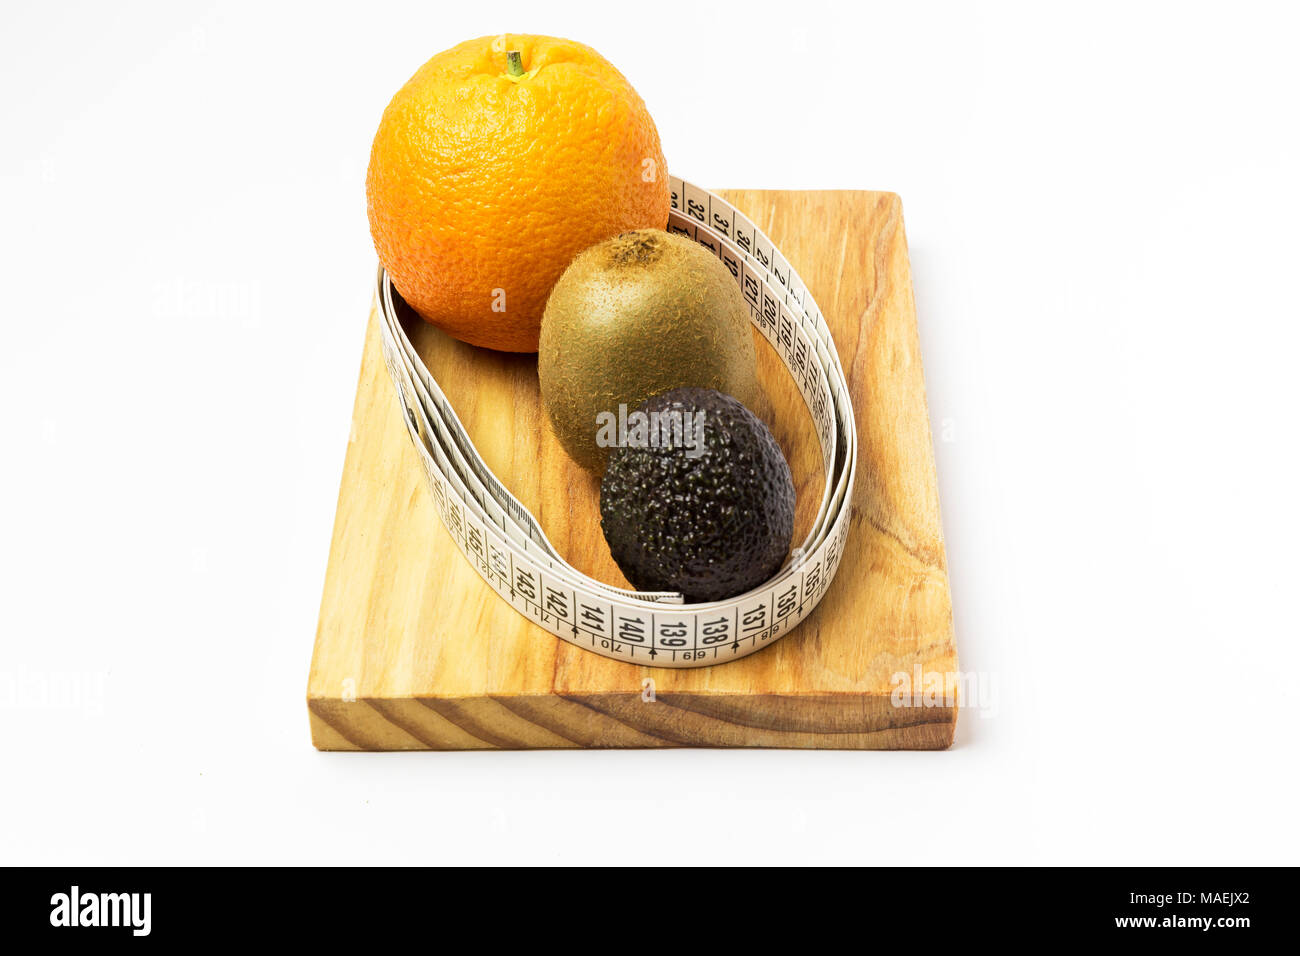 orange, kiwi and avocado surrounded by a tape measure on a wooden board - Stock Image